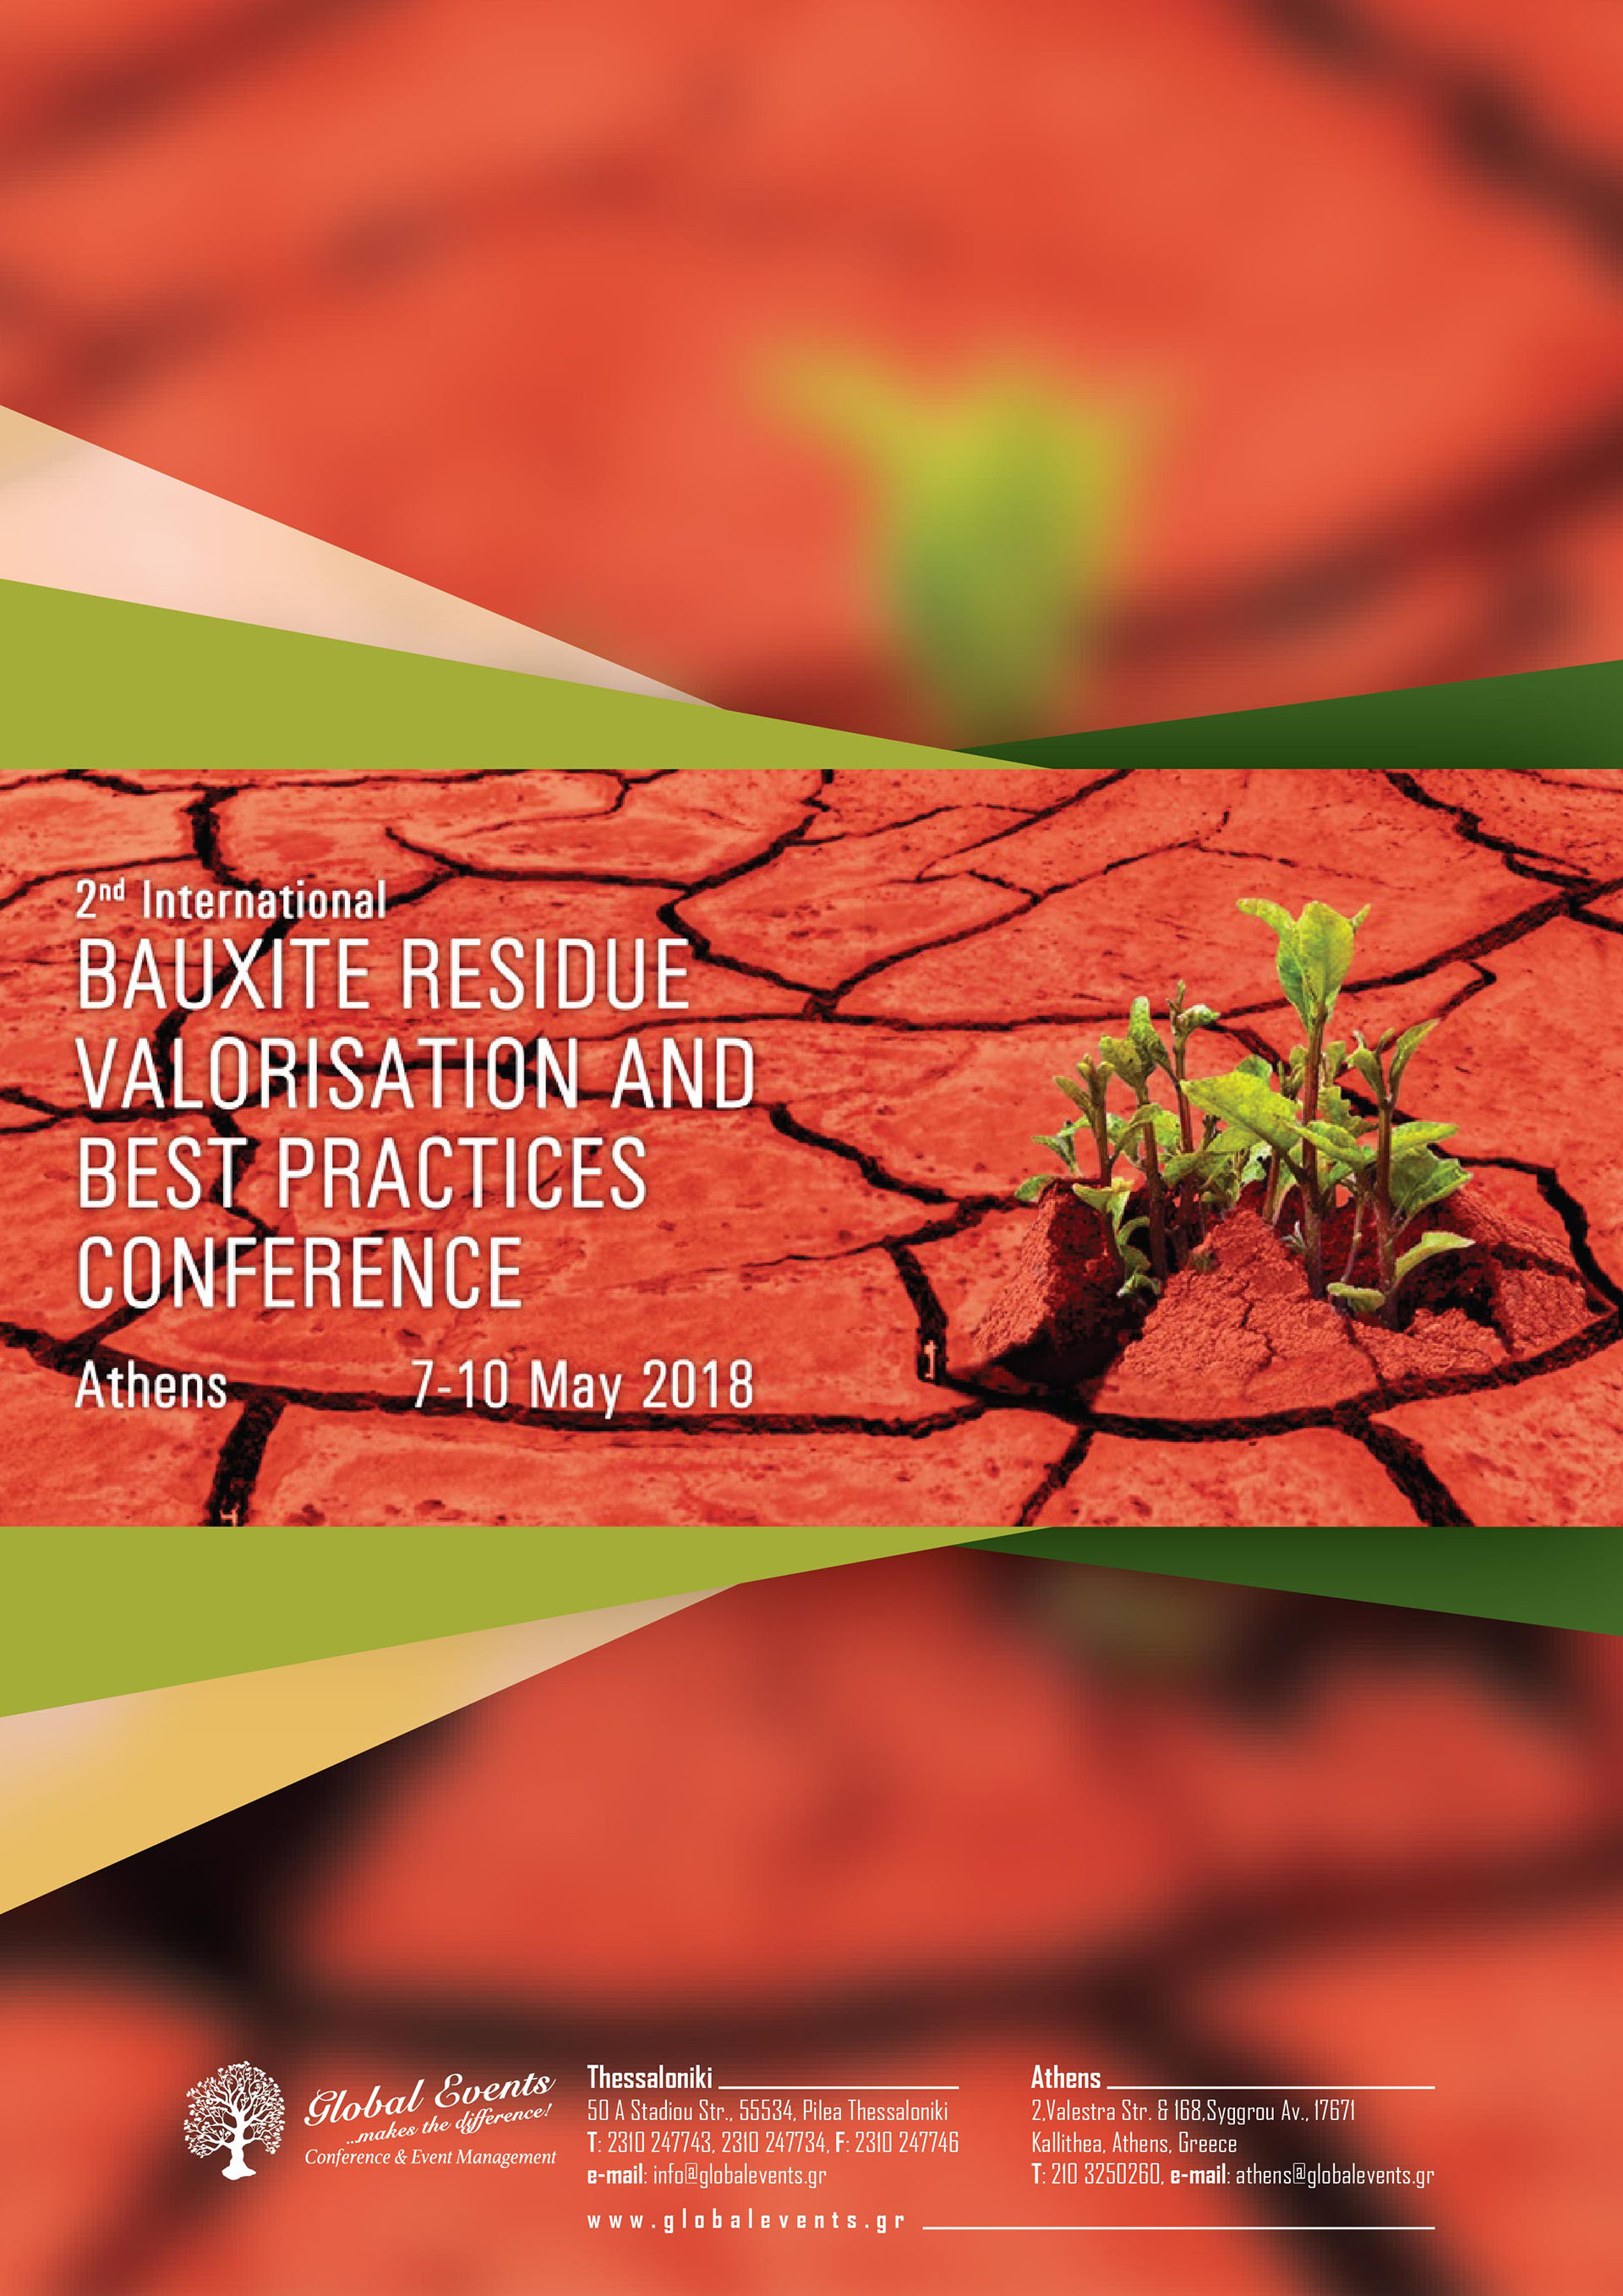 373. 2nd International Bauxite Residue Valorisation and Best Practices Conference